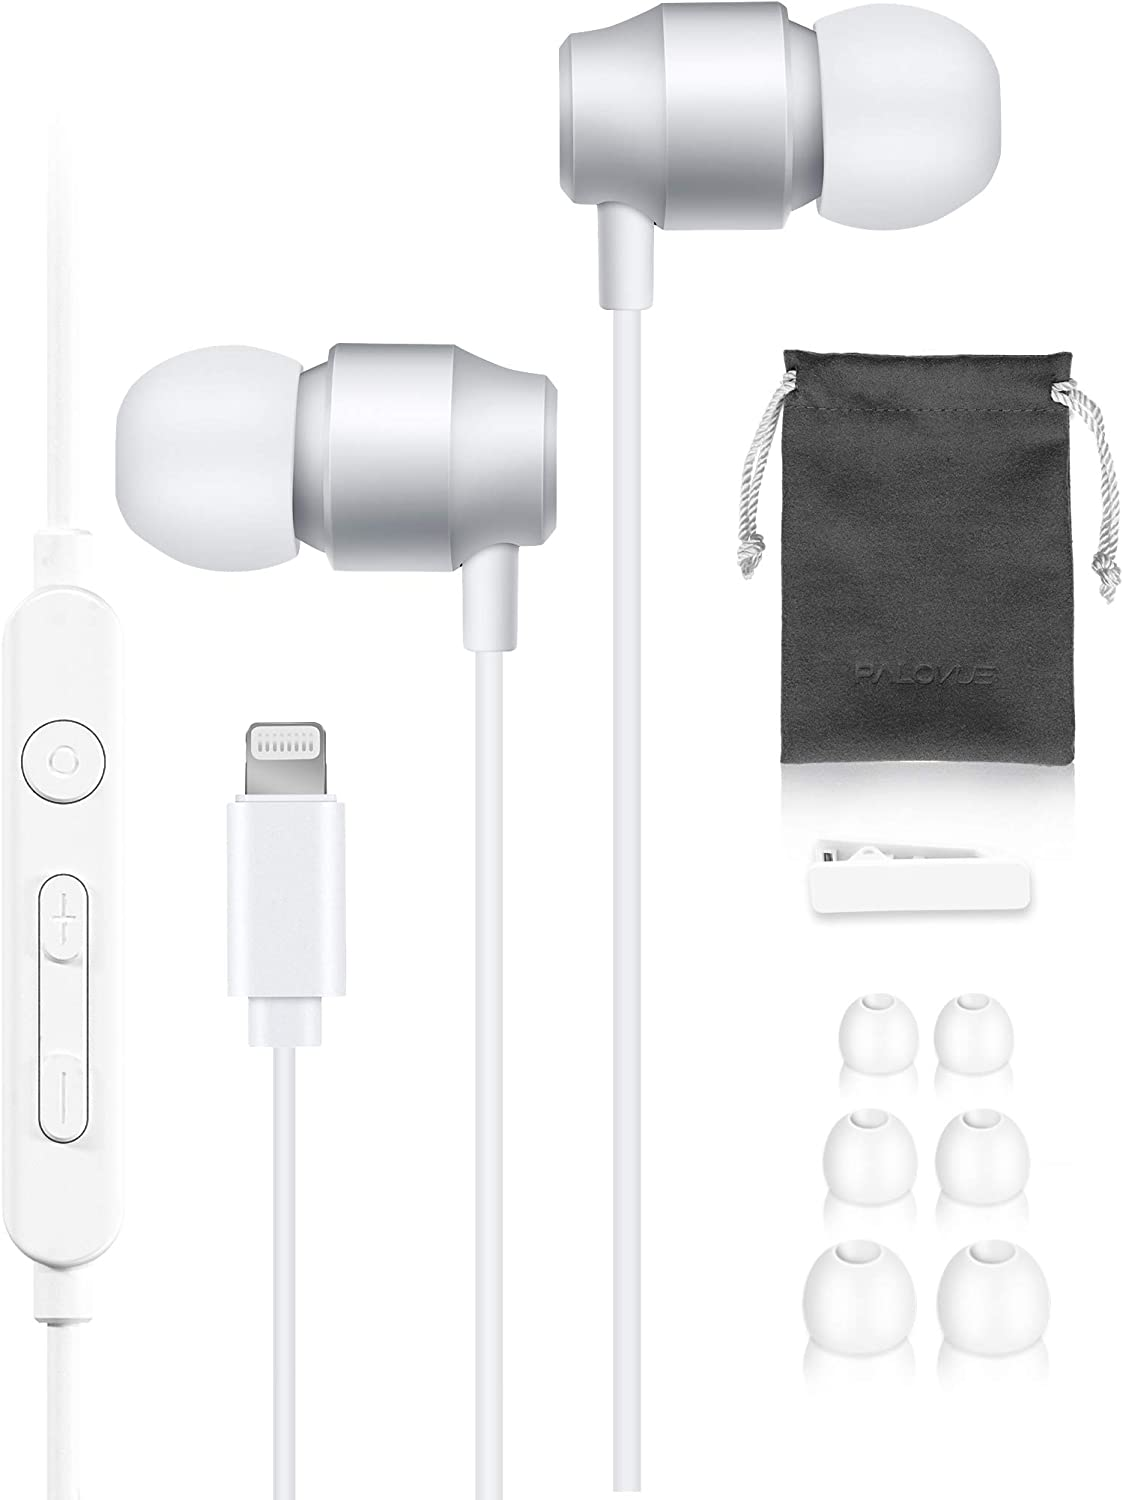 PALOVUE Black Lightning Headphones MFi Certified Earphones Earbuds Compatible iPhone 12 11 Pro Max iPhone X XS Max XR 7 8 Plus with Mic Controller (Earflow White)